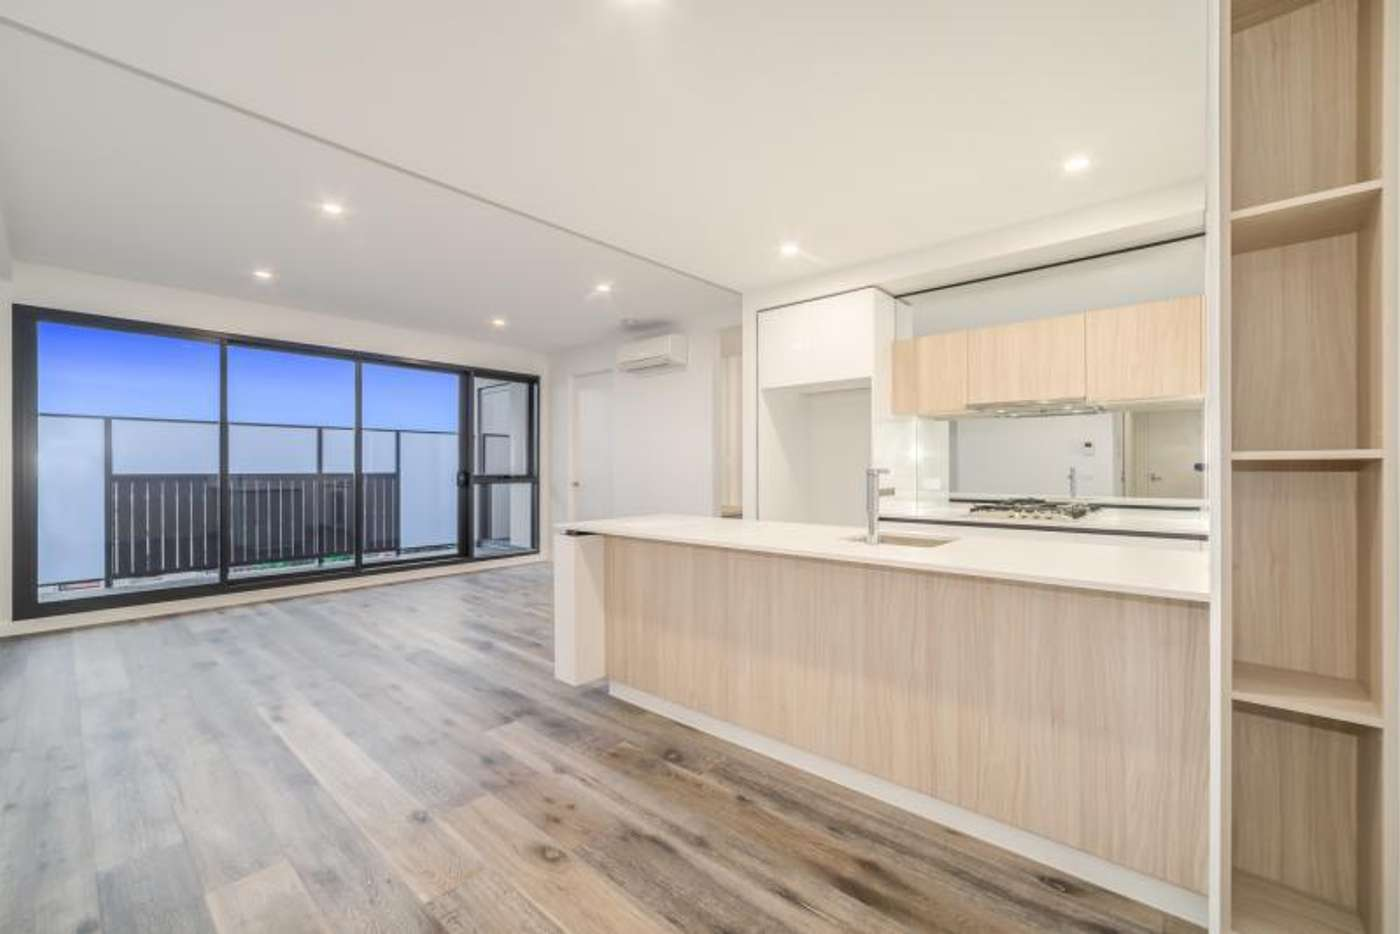 Main view of Homely apartment listing, 104/9 Camira Street, Malvern East VIC 3145